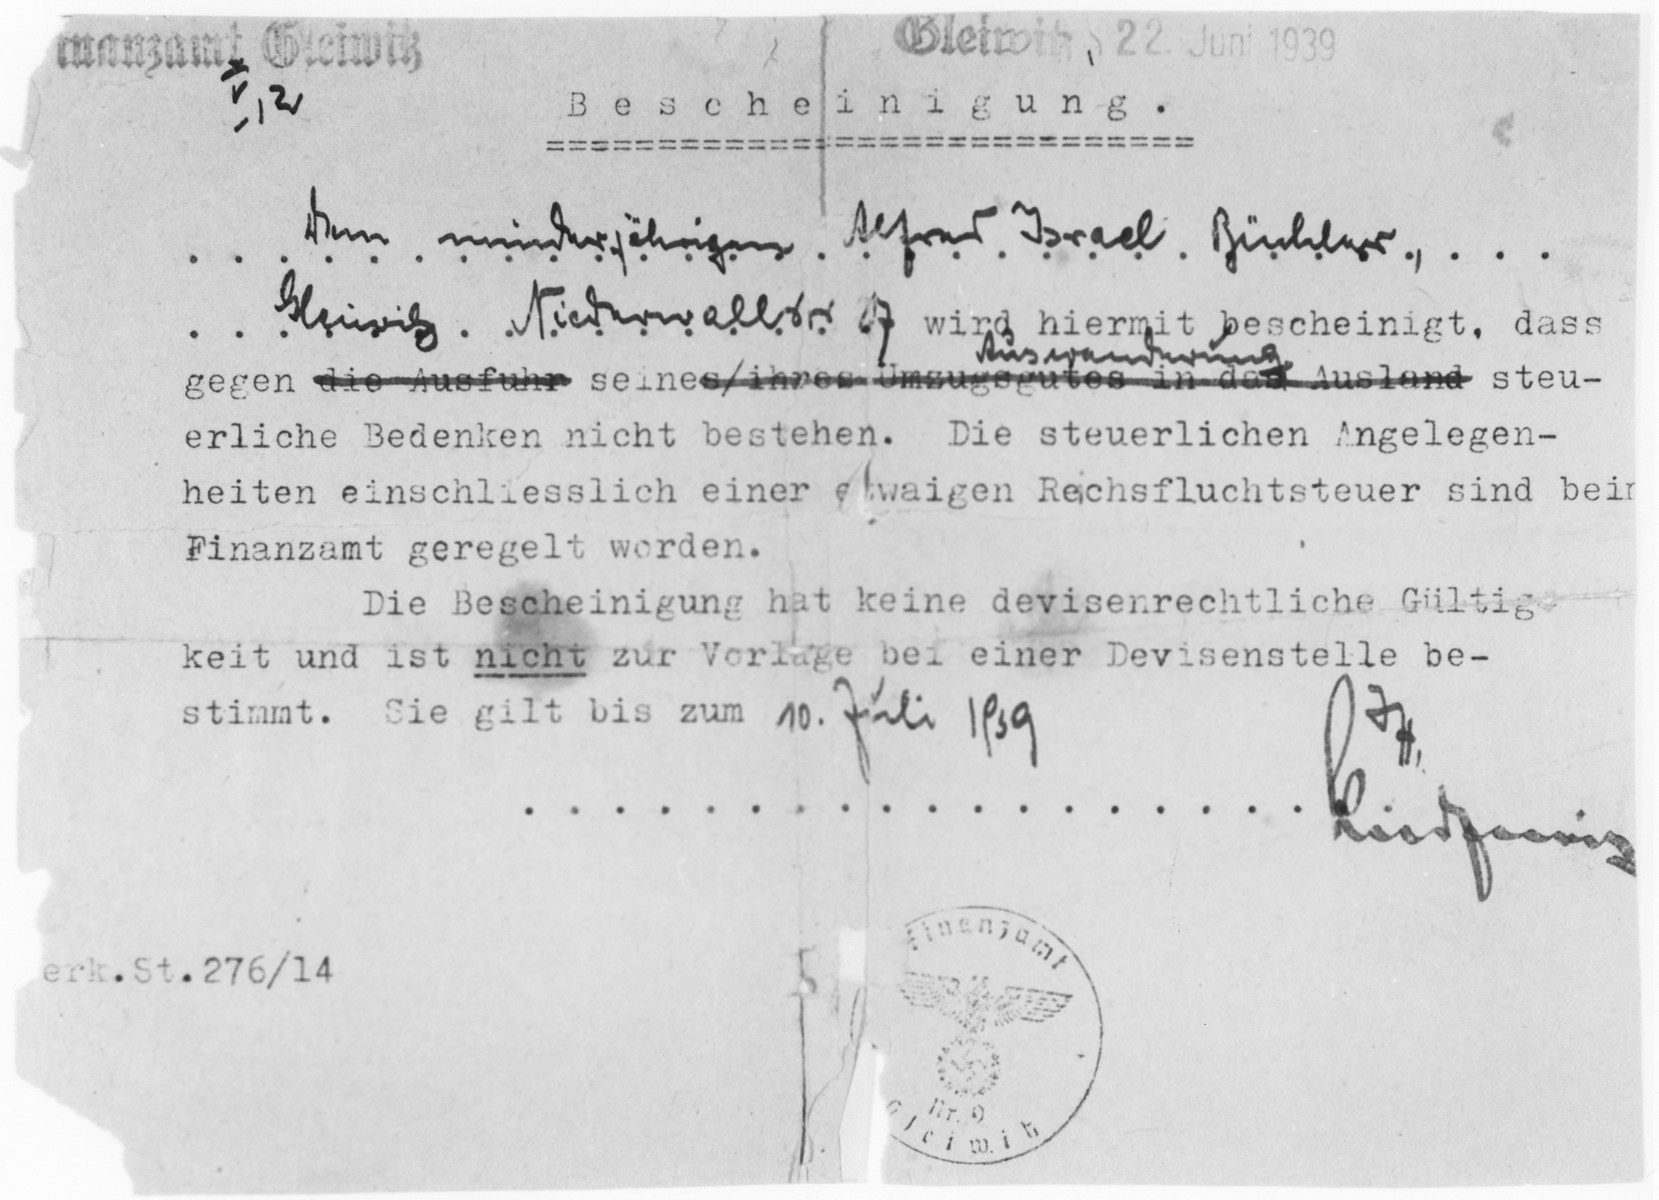 Document stating that Alfred Büchler is free to emigrate and does not owe any back taxes.  The document was issued on June 22 and was valid until July 10, 1939.